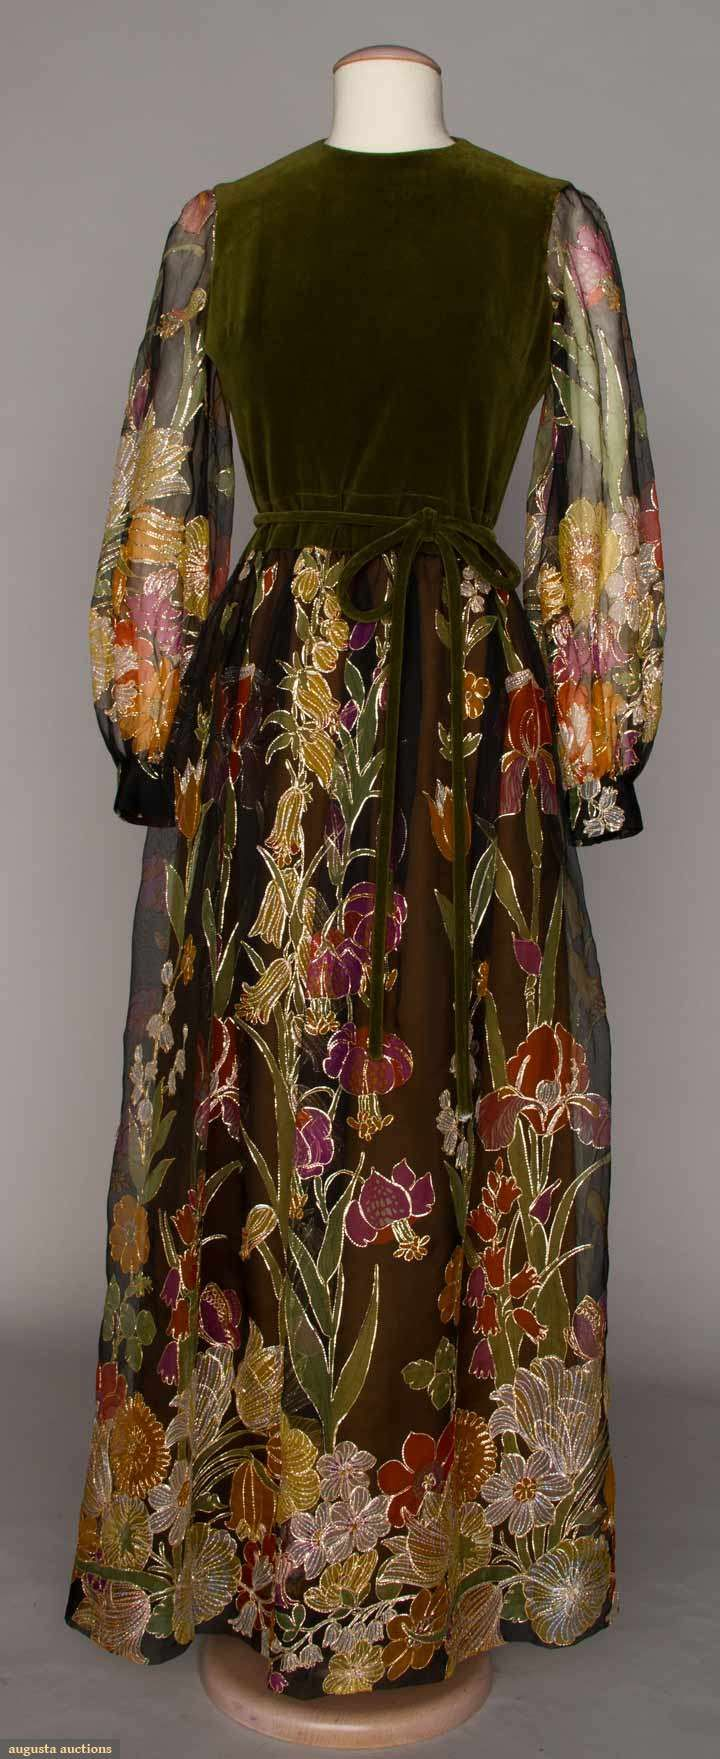 """Label """"Diorling by Christian Dior London - """"MAID MARION"""" DRESS, 1976. Olive green velveteen top & tie belt, sleeves & skirt of sheer dark brown silk printed w/ vertical rows of garden flowers in fall shades, each element outlined in gold thread."""